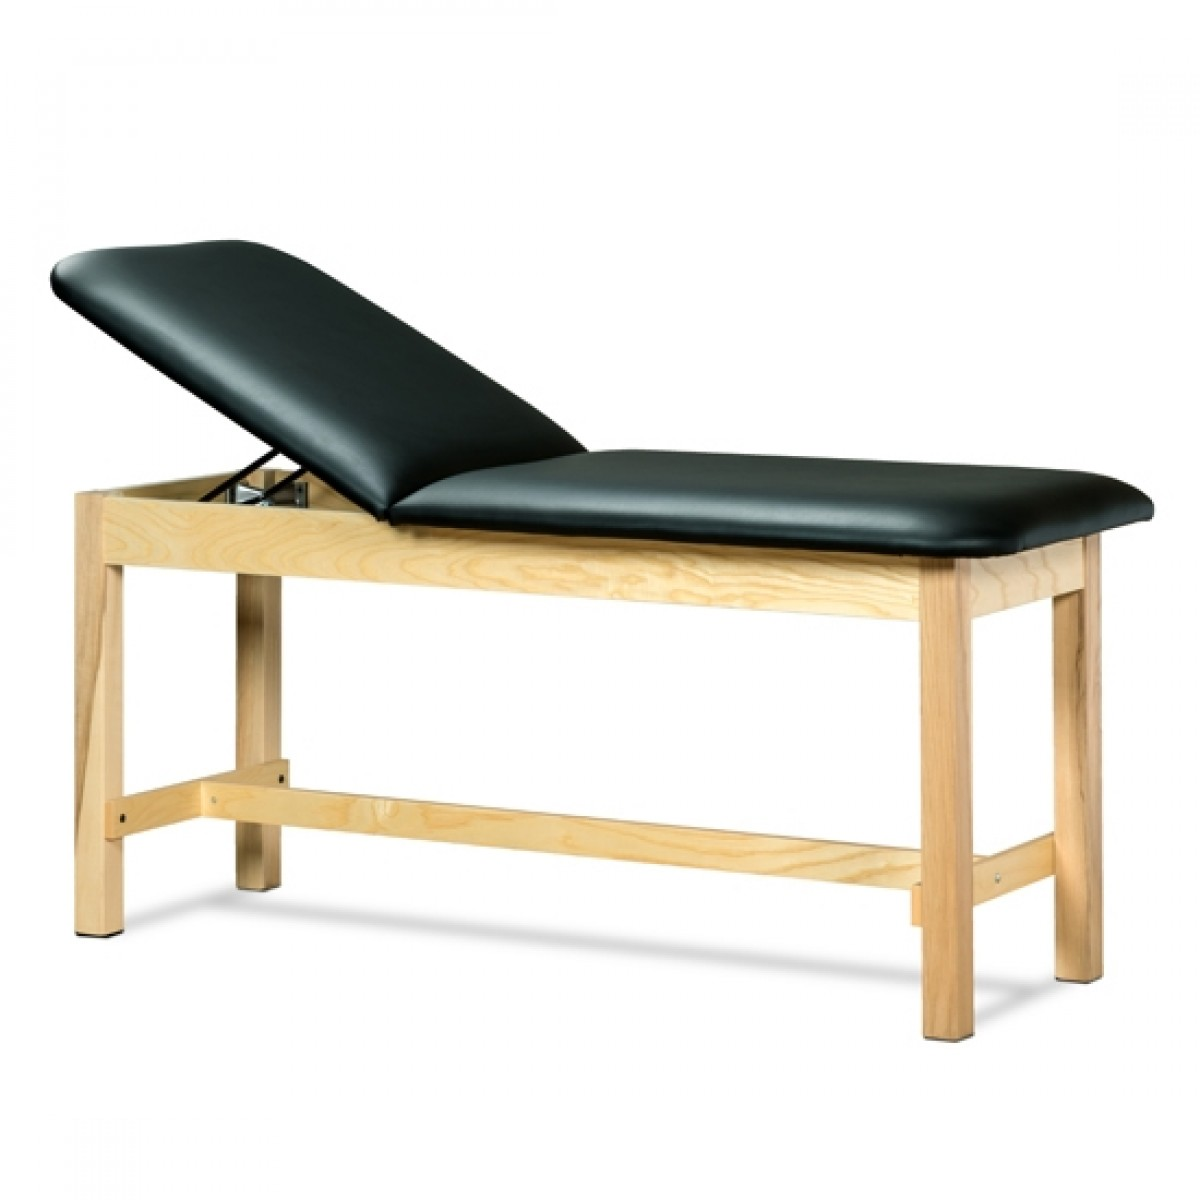 1010 Treatment Table Treatment Table Clinton Table